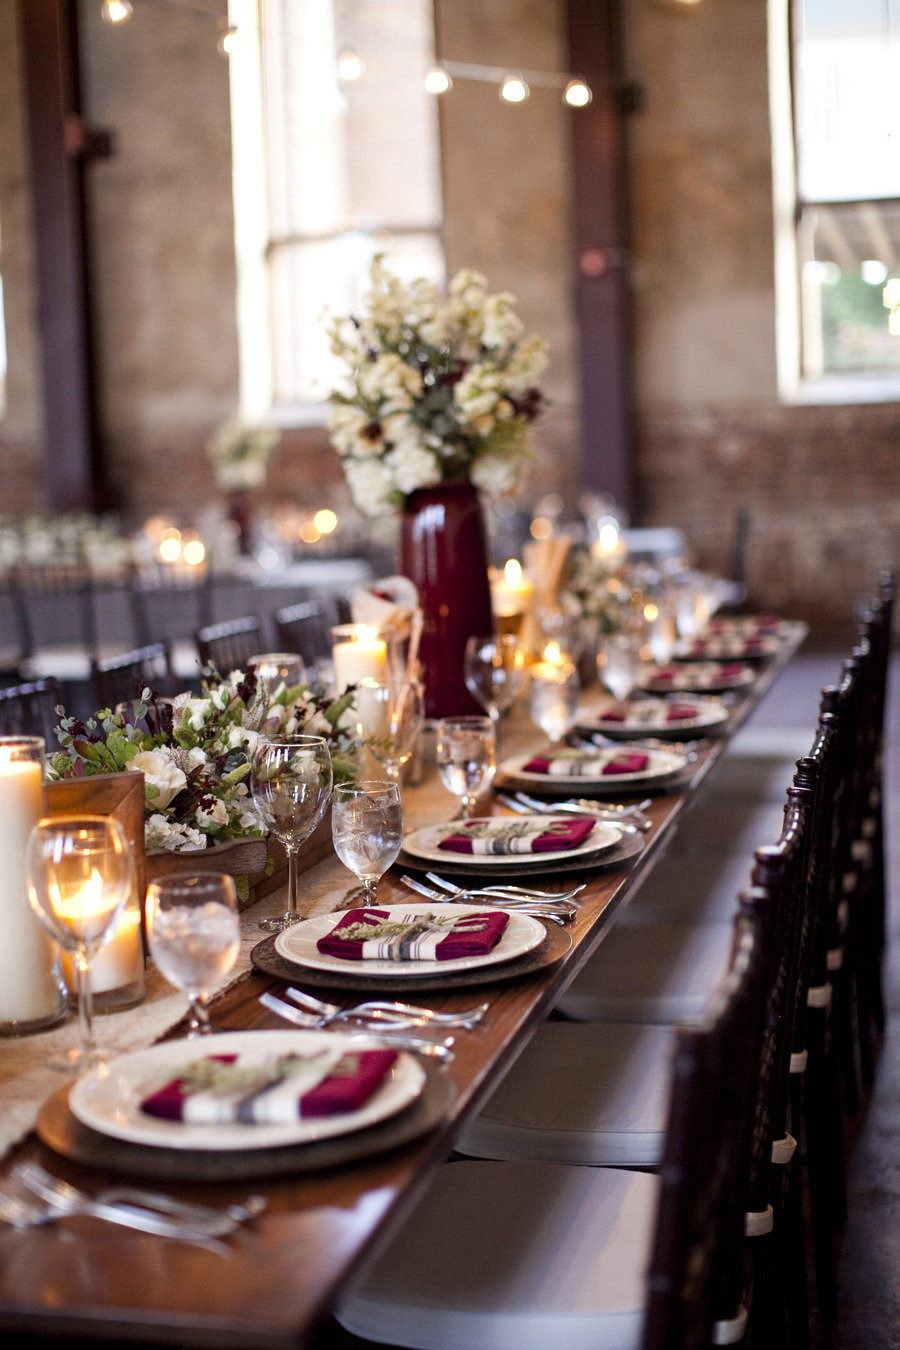 Wilmington wedding at the brooklyn arts center by millie holloman maroon themed wedding reception decorations with maroon vases and napkins with white floral accents for a maroon themed wedding junglespirit